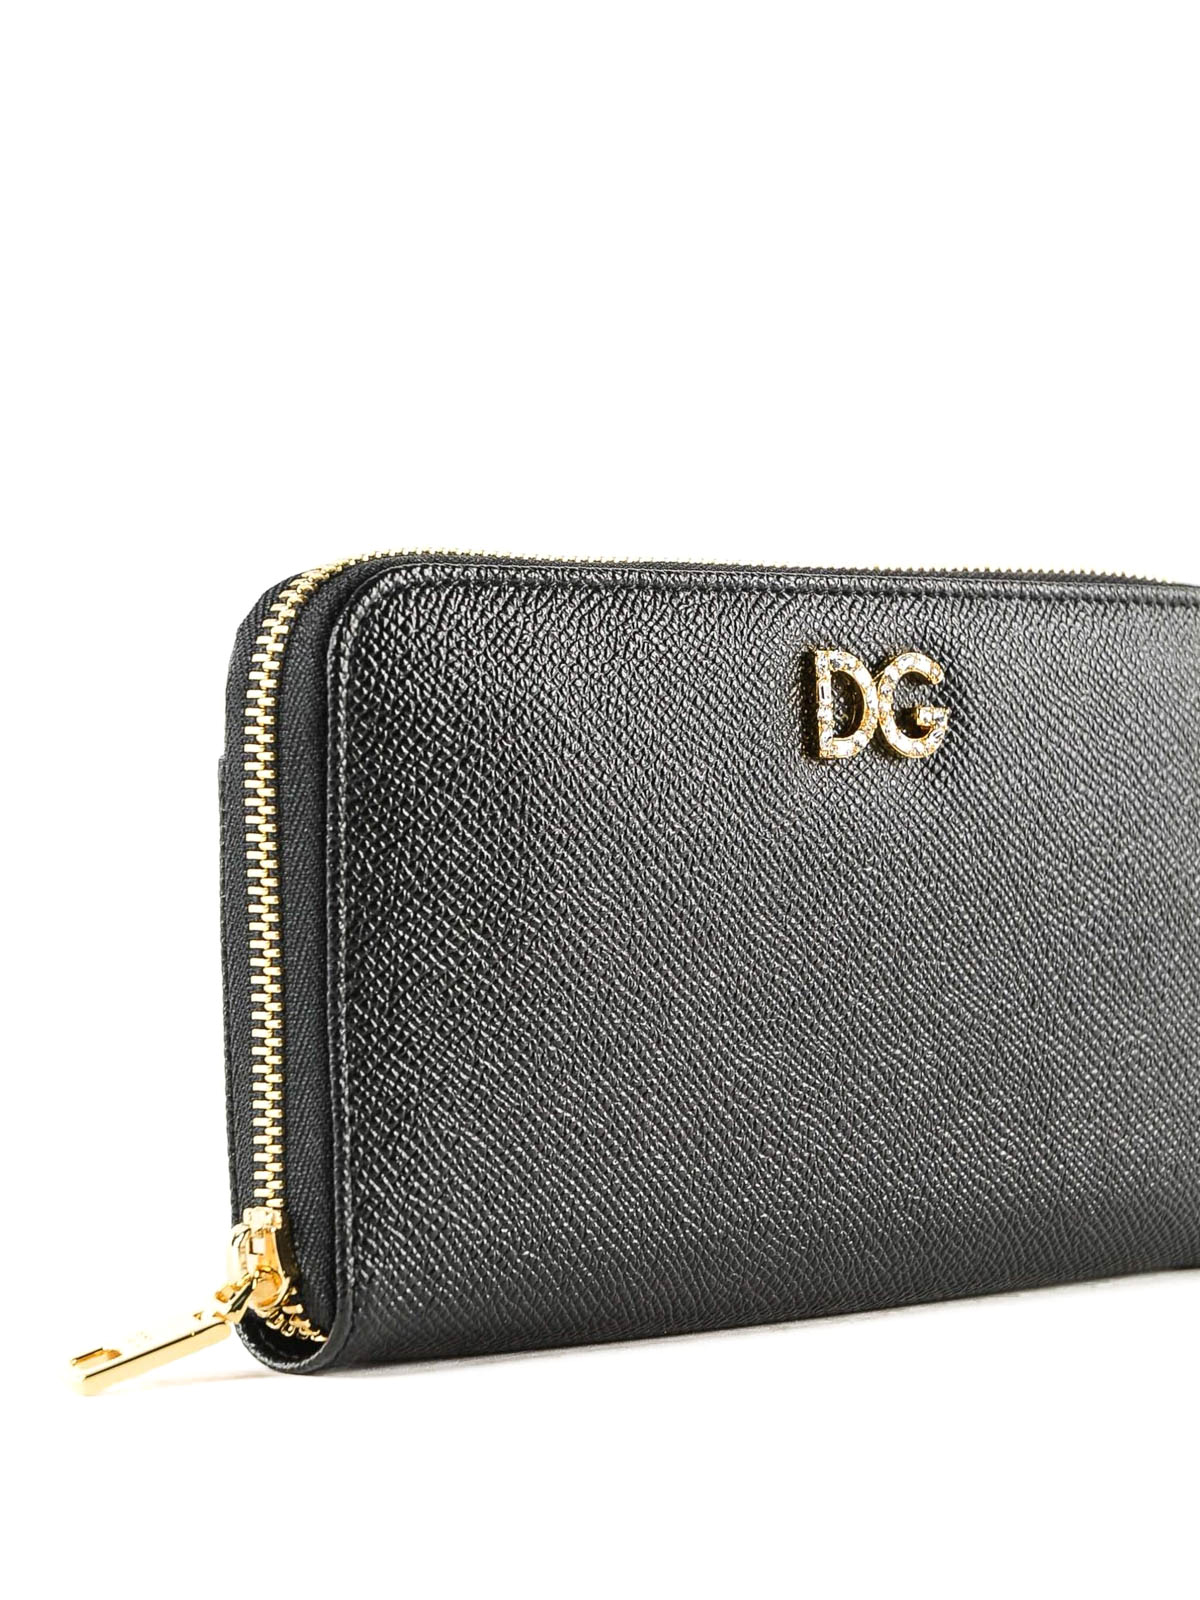 11be1354fee Rhinestone DG black Dauphine leather wallet shop online: DOLCE & GABBANA